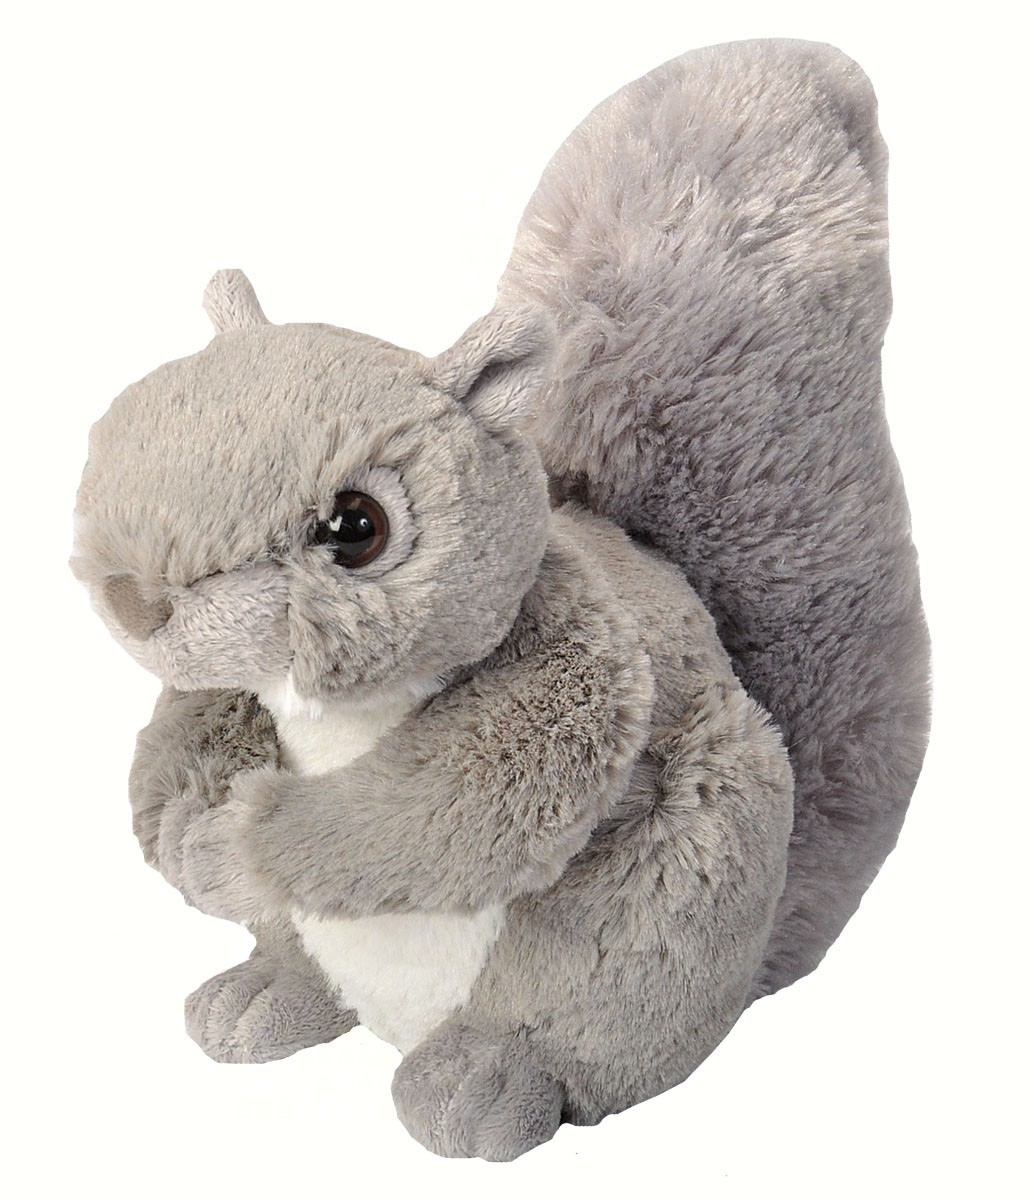 Grey Squirrel 8 inch